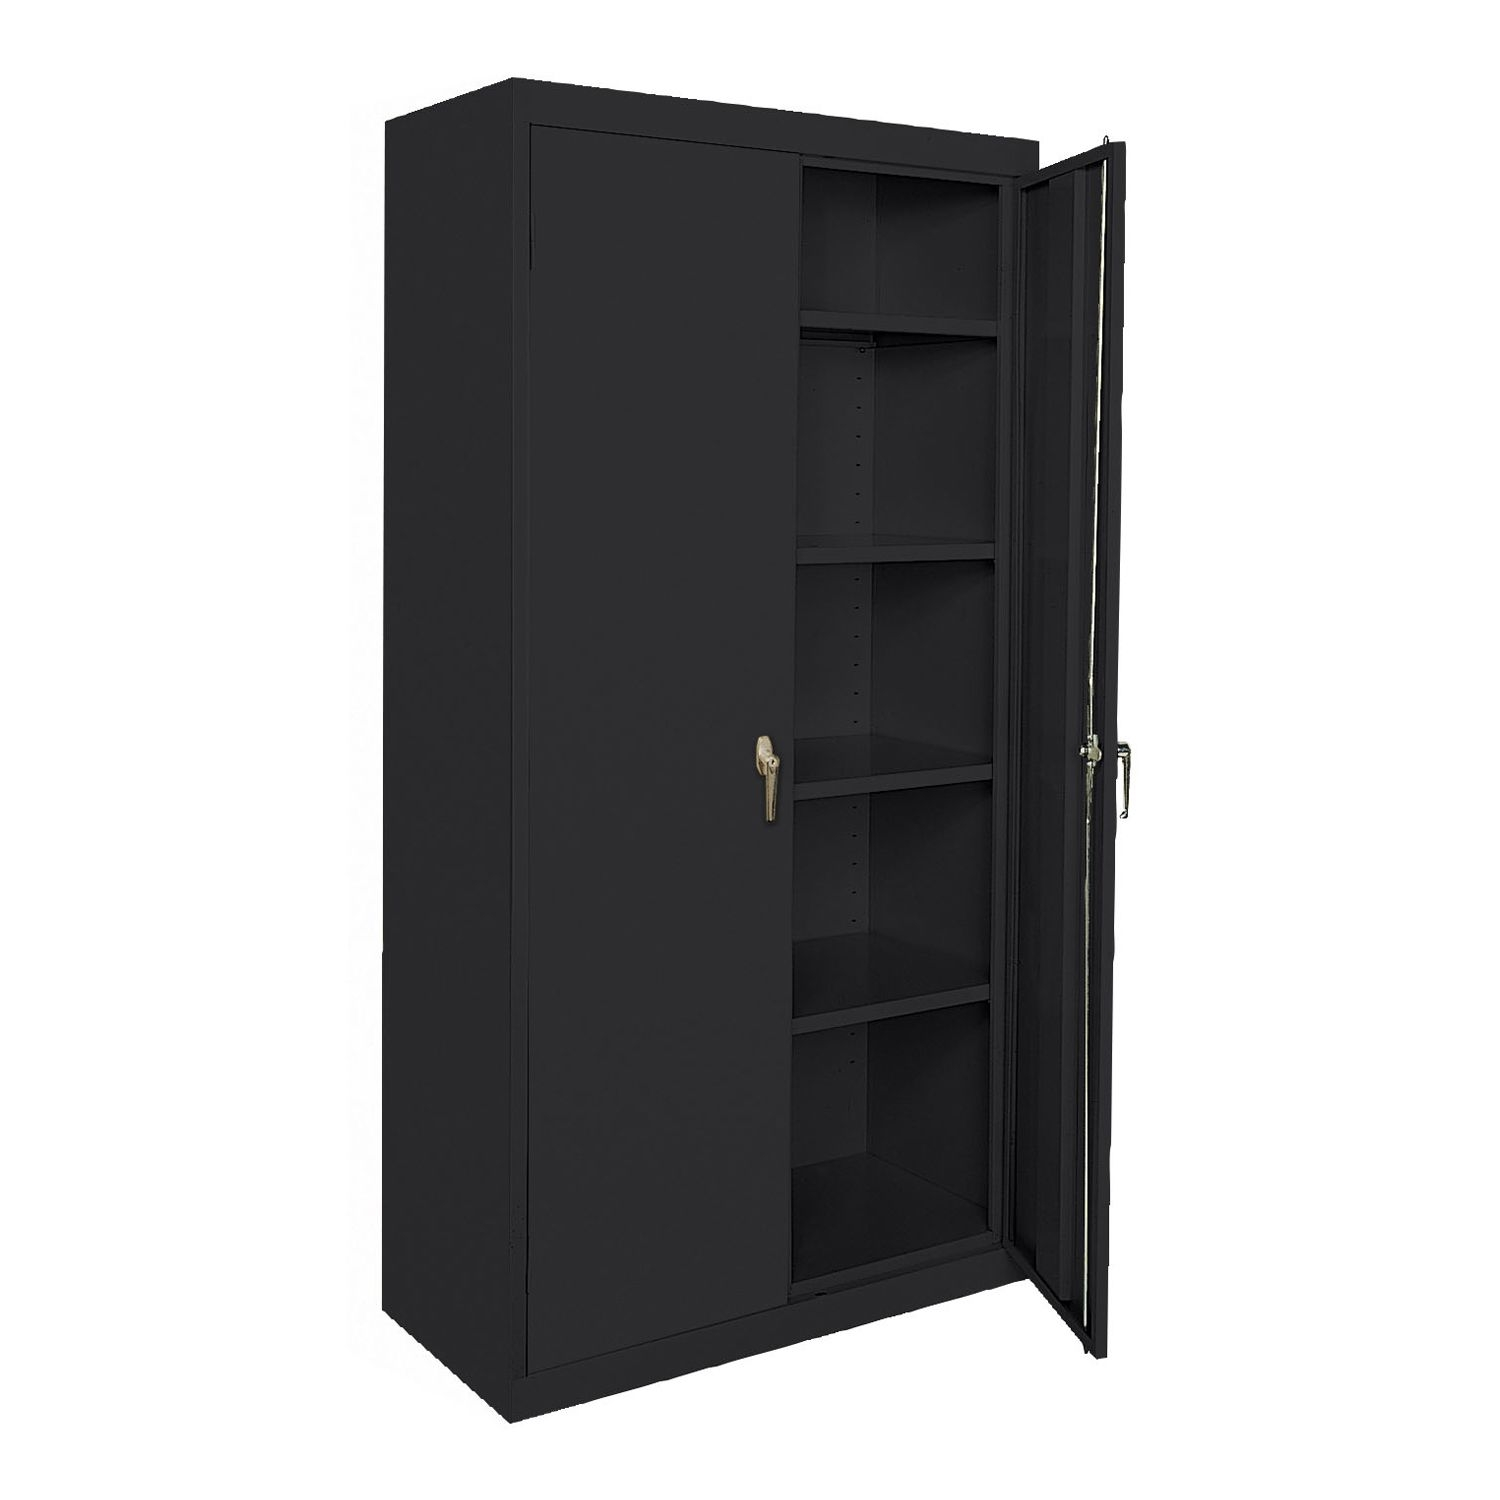 Large Metal Storage Cabinets With Doors